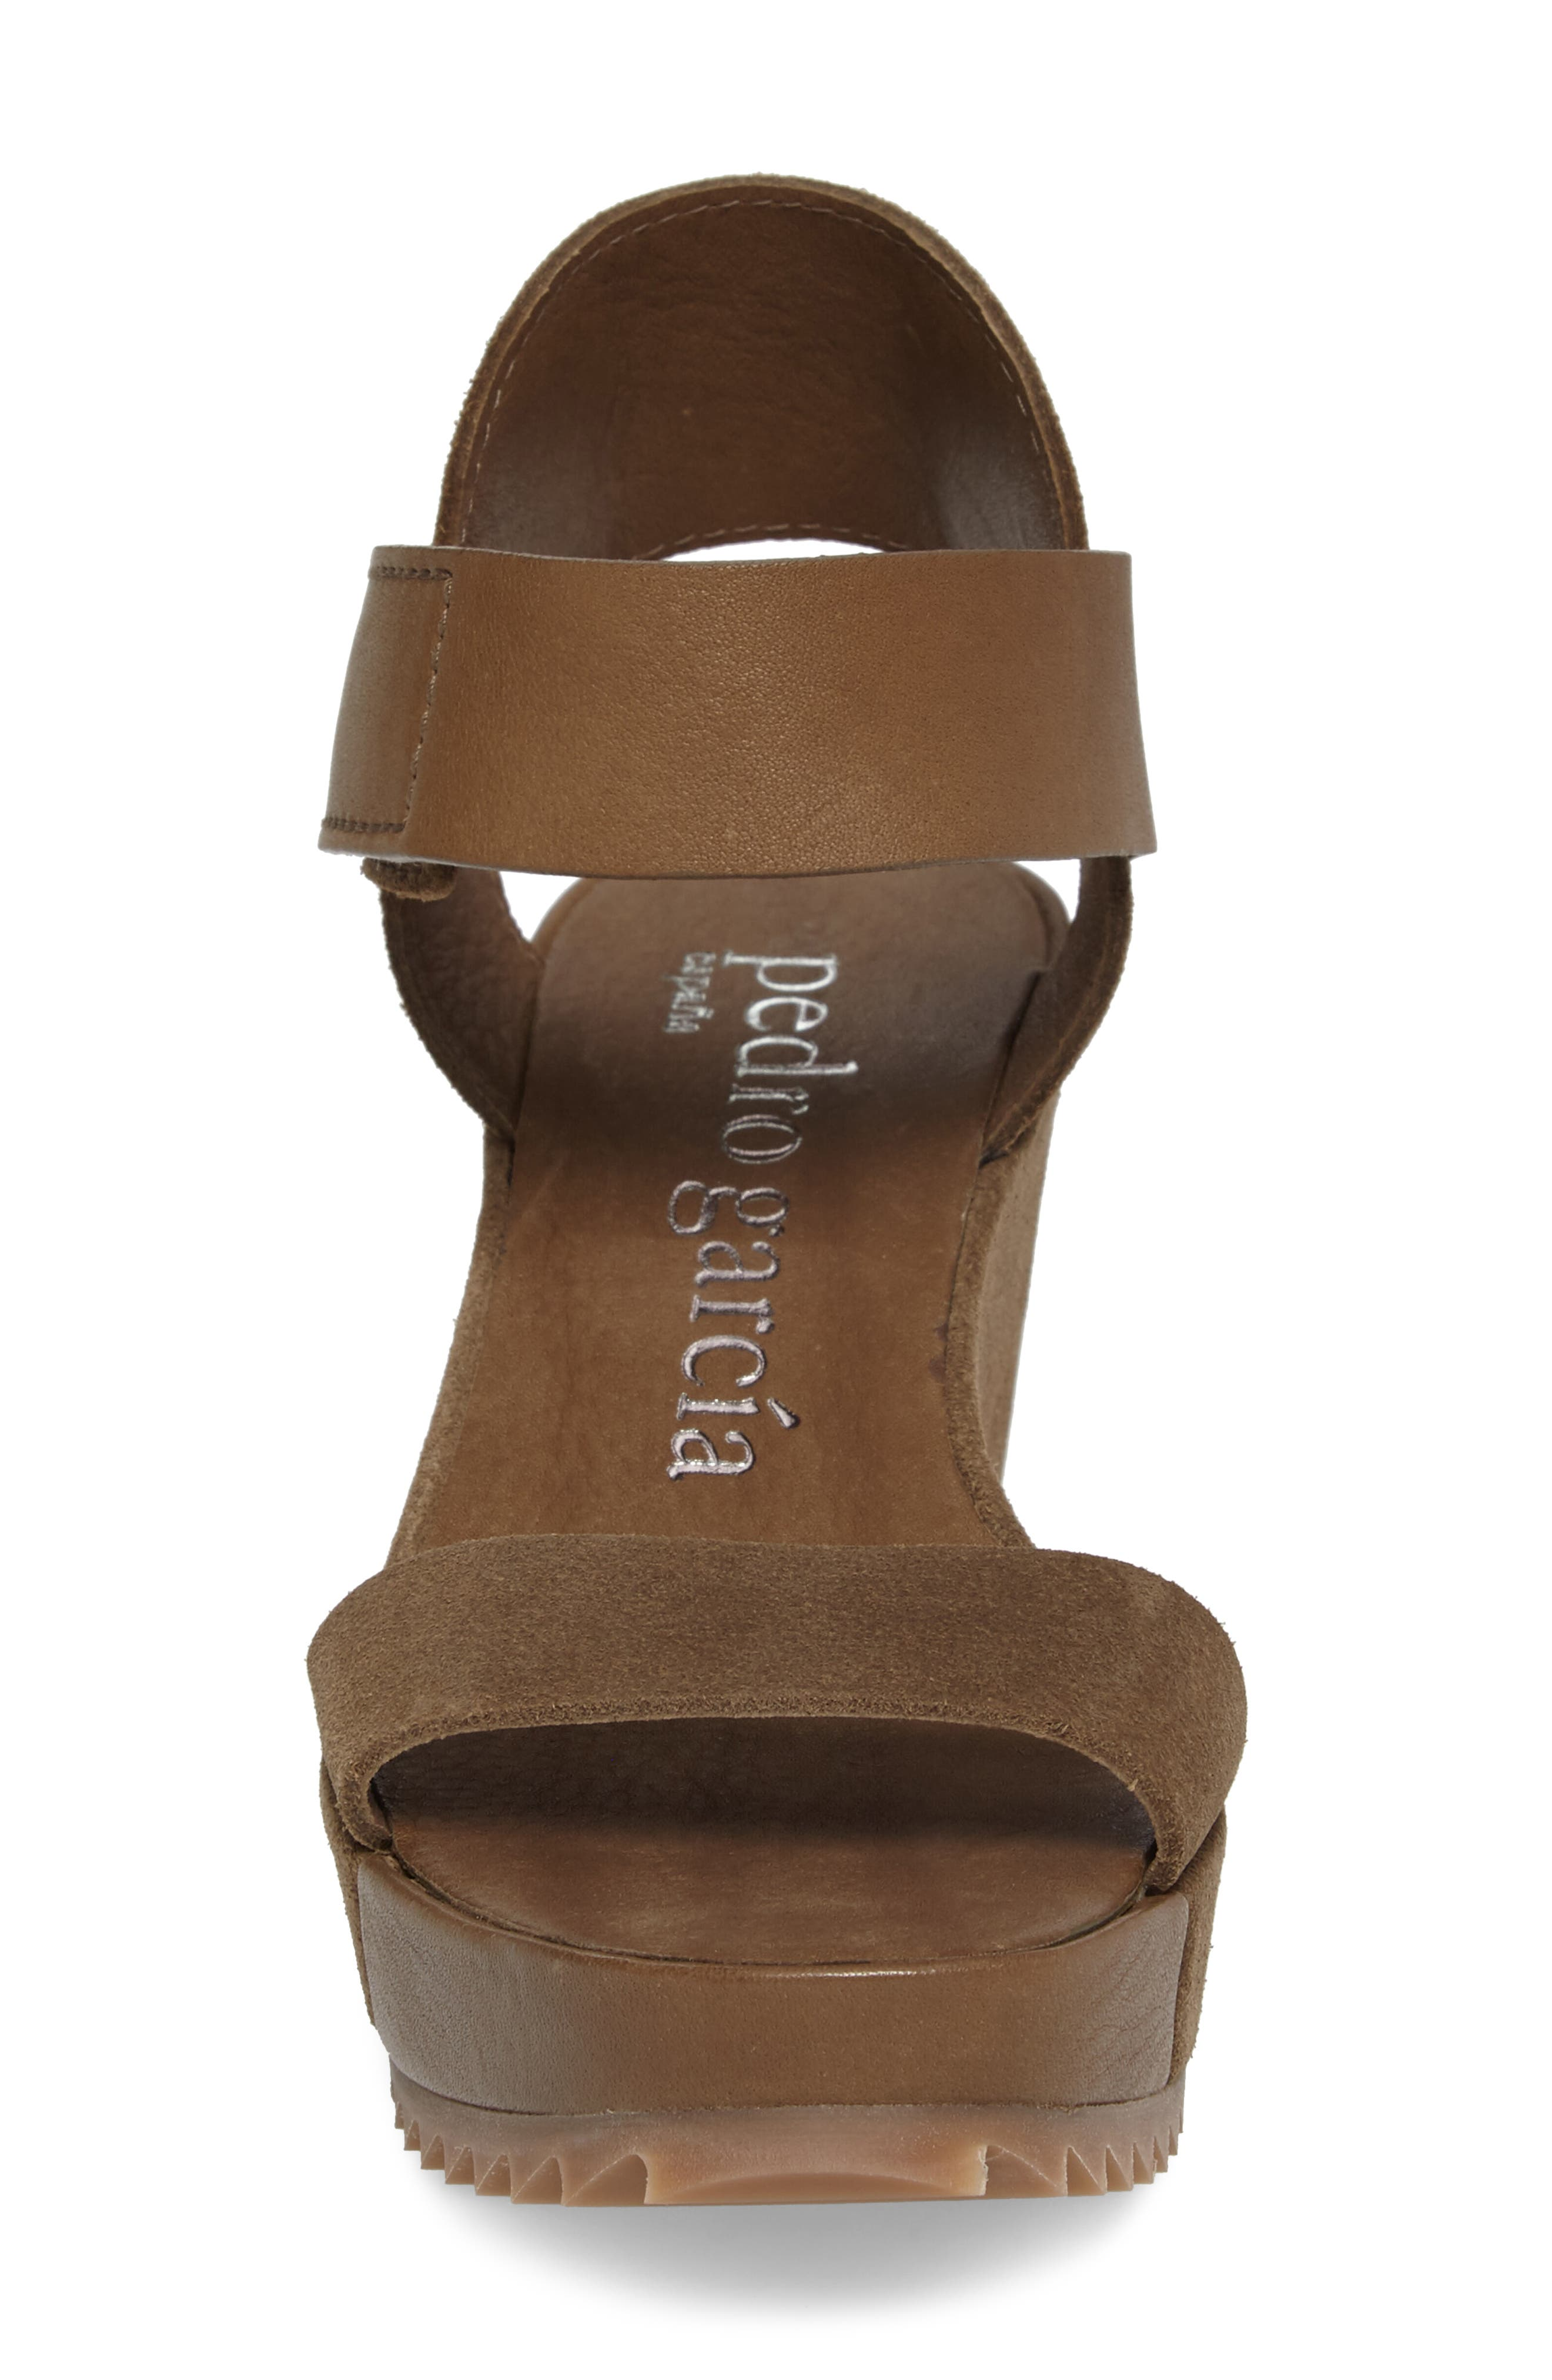 Francesca Wedge Sandal,                             Alternate thumbnail 4, color,                             250